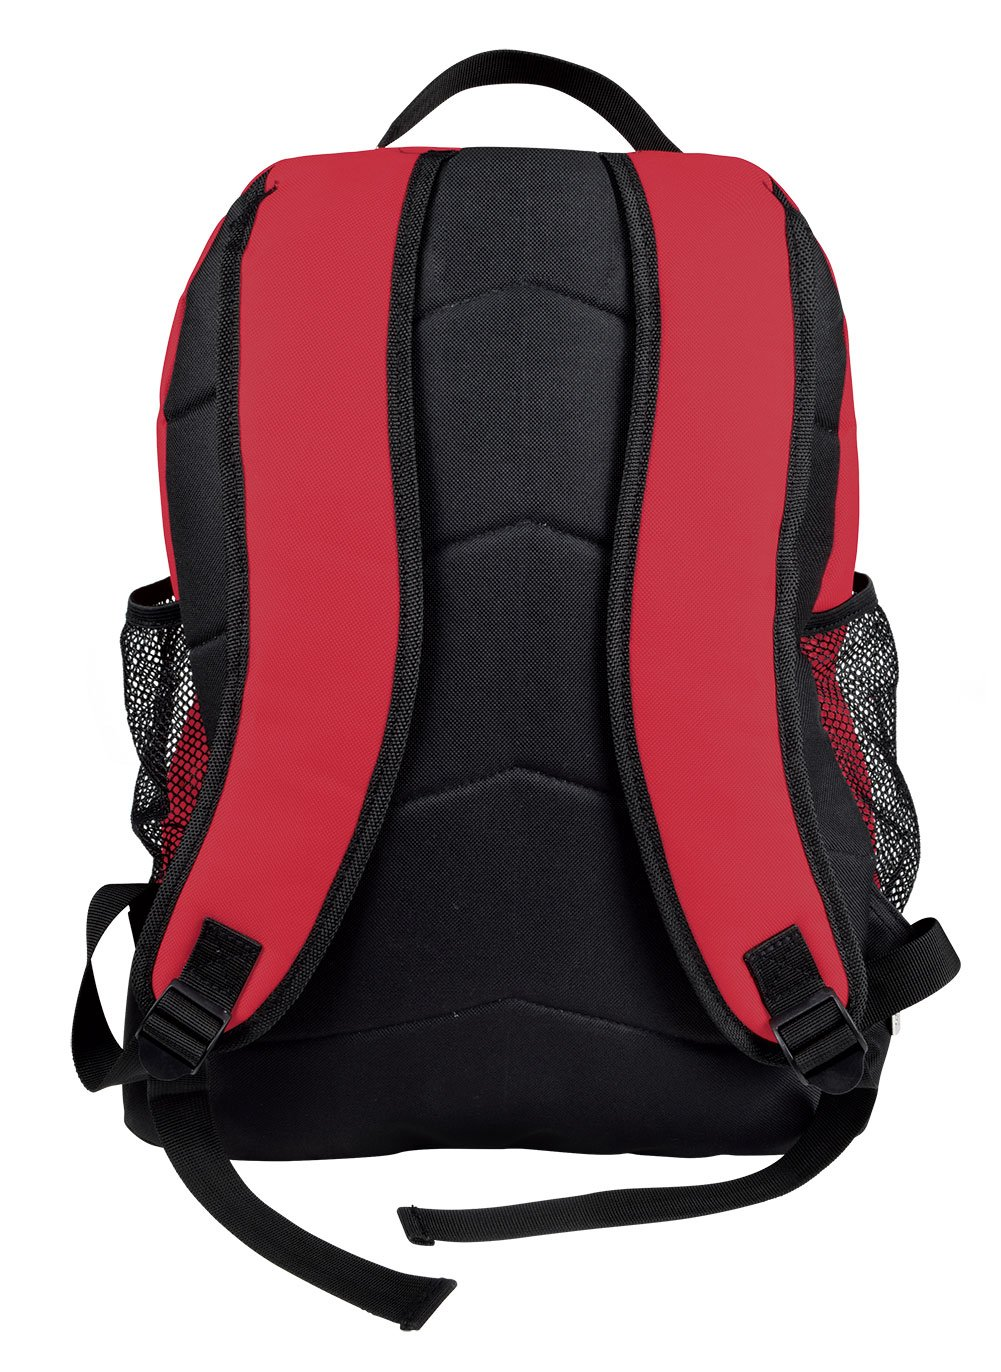 c94524a16d54 Amazon.com: Chasse: Cheer Bags